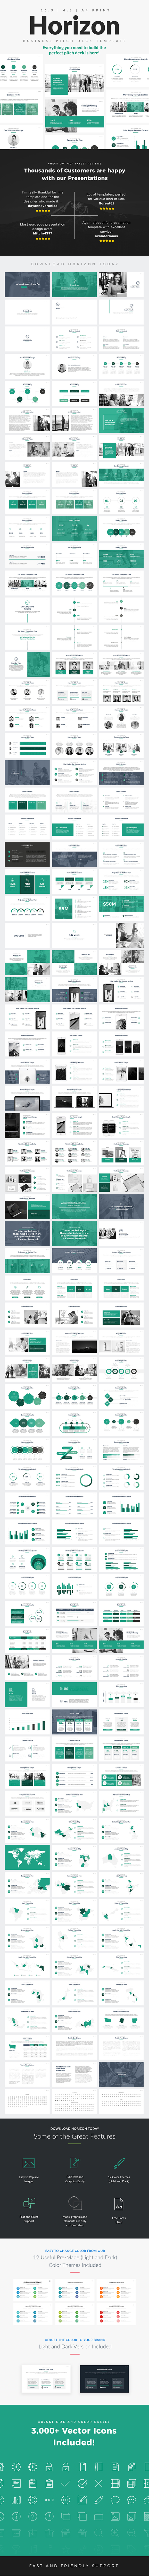 Horizon Business Pitch Deck Google Slides Template